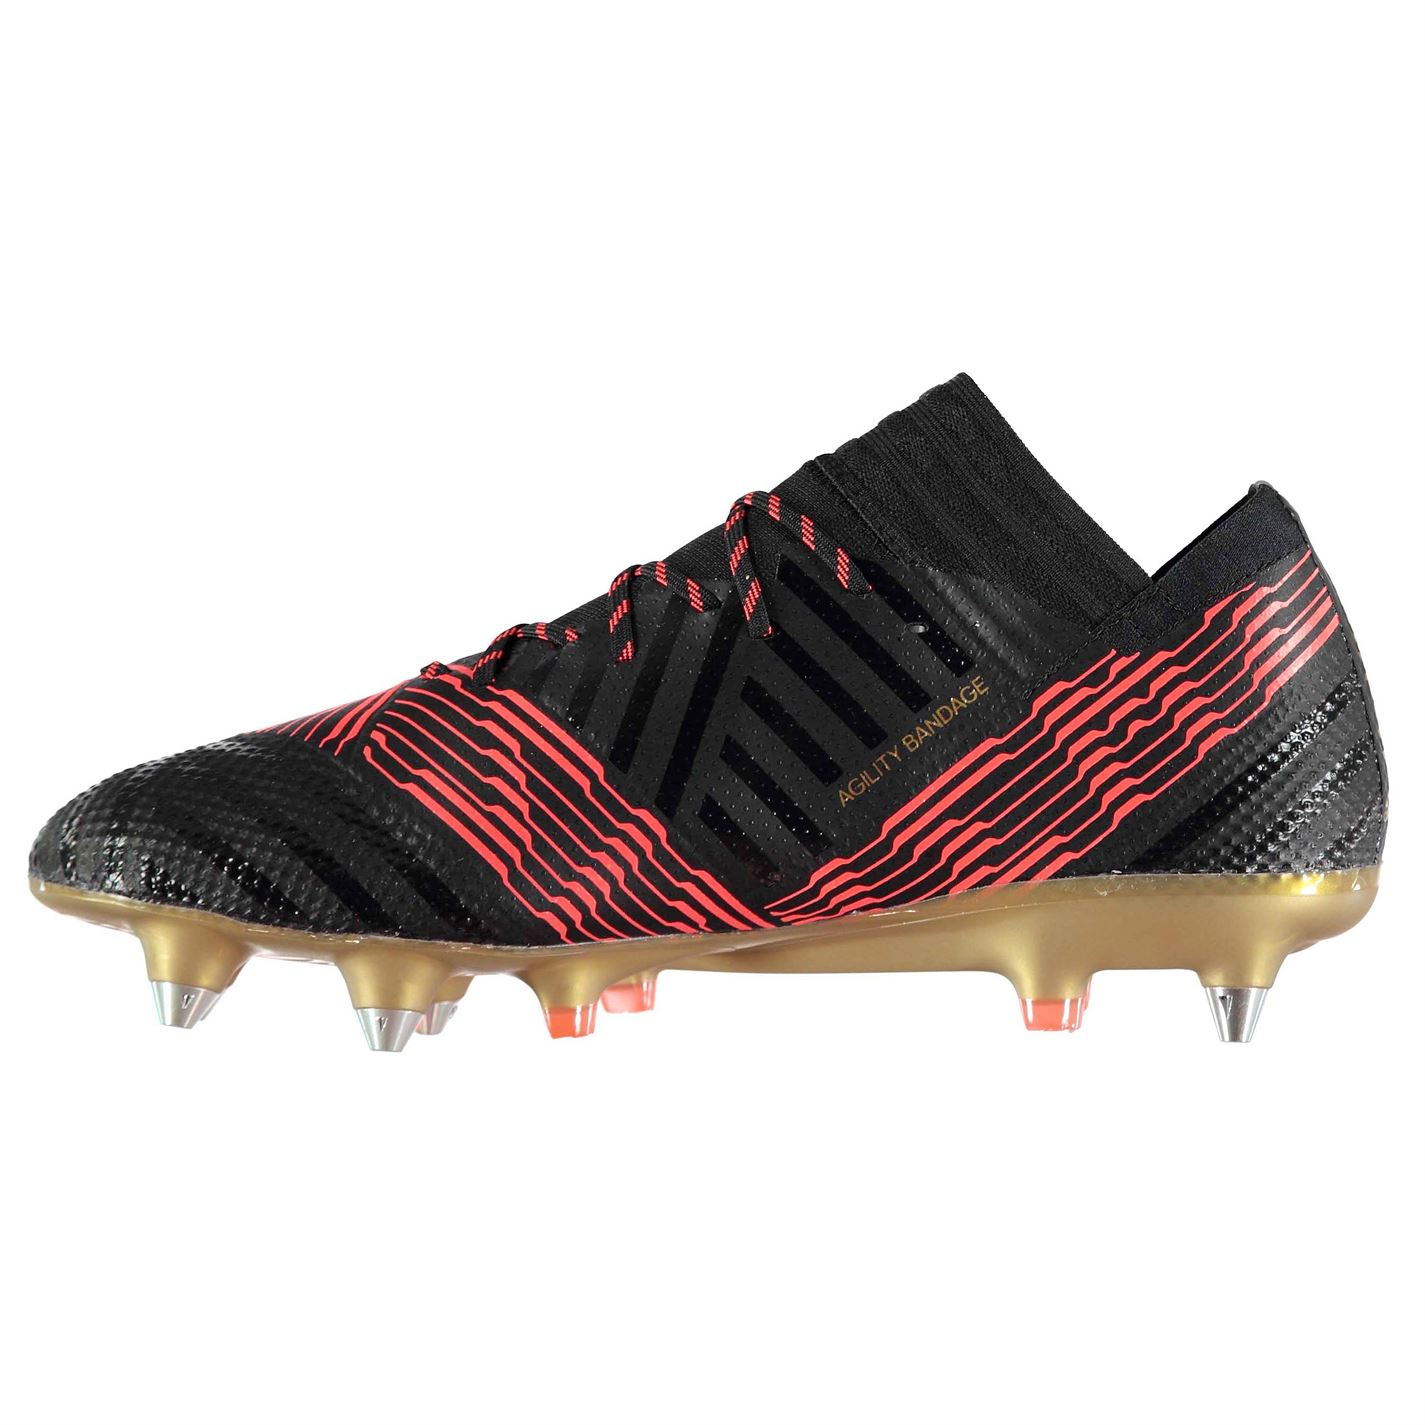 Adidas Mens Nemeziz 17.1 SG Football Stiefel Stiefel Stiefel Soft Ground Lace Up Lightweight Studs 6caf8f